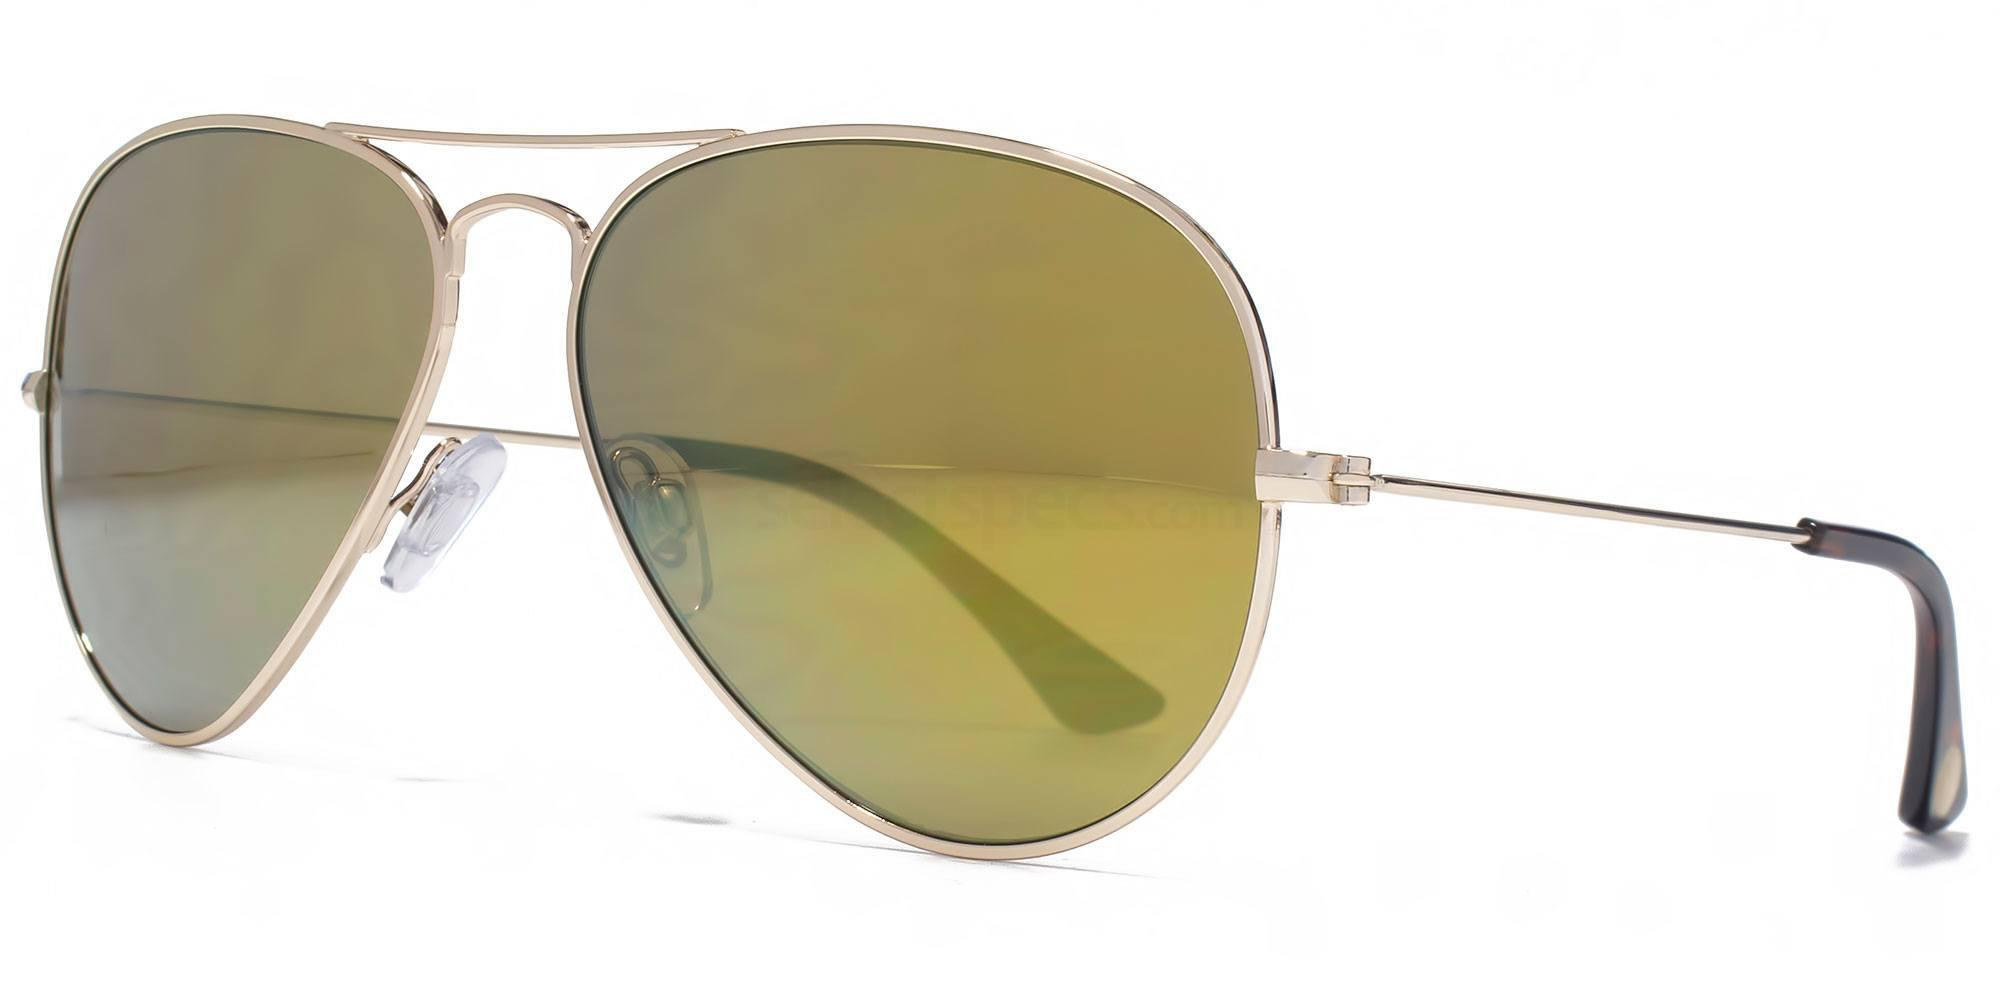 0b6f50dc227 5 Affordable Alternatives to Ray-Ban Aviators Under £40